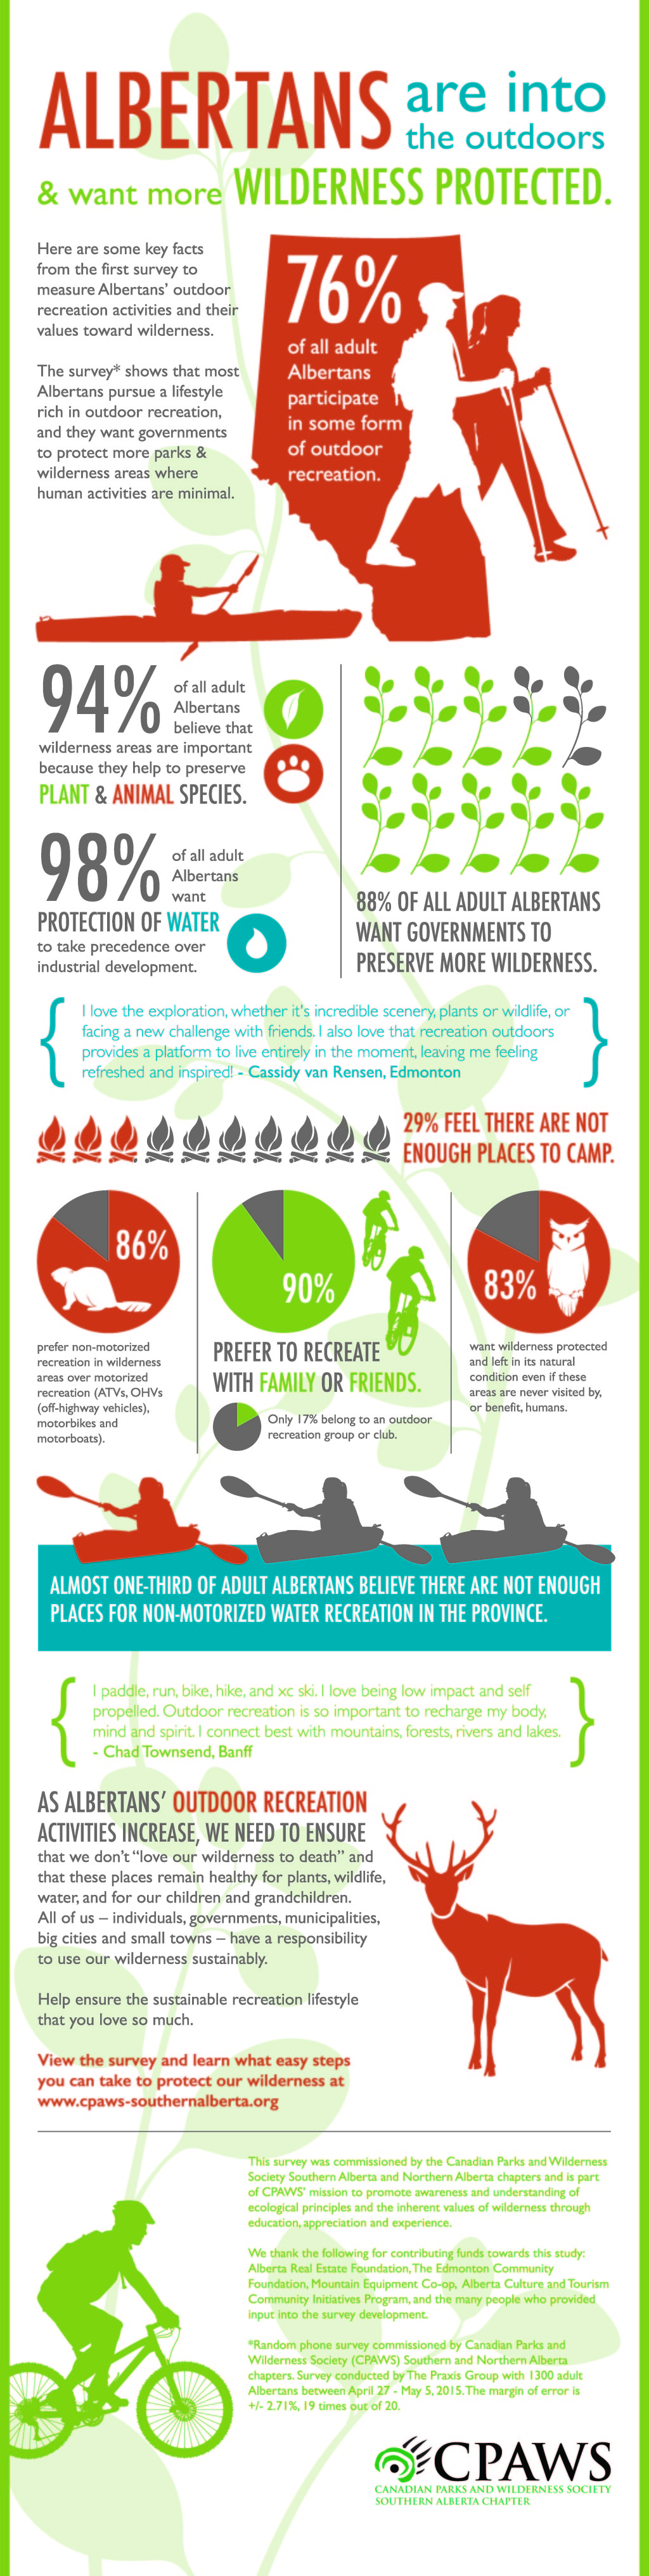 CPAWS_South_InfoGraphic_151116_FIN